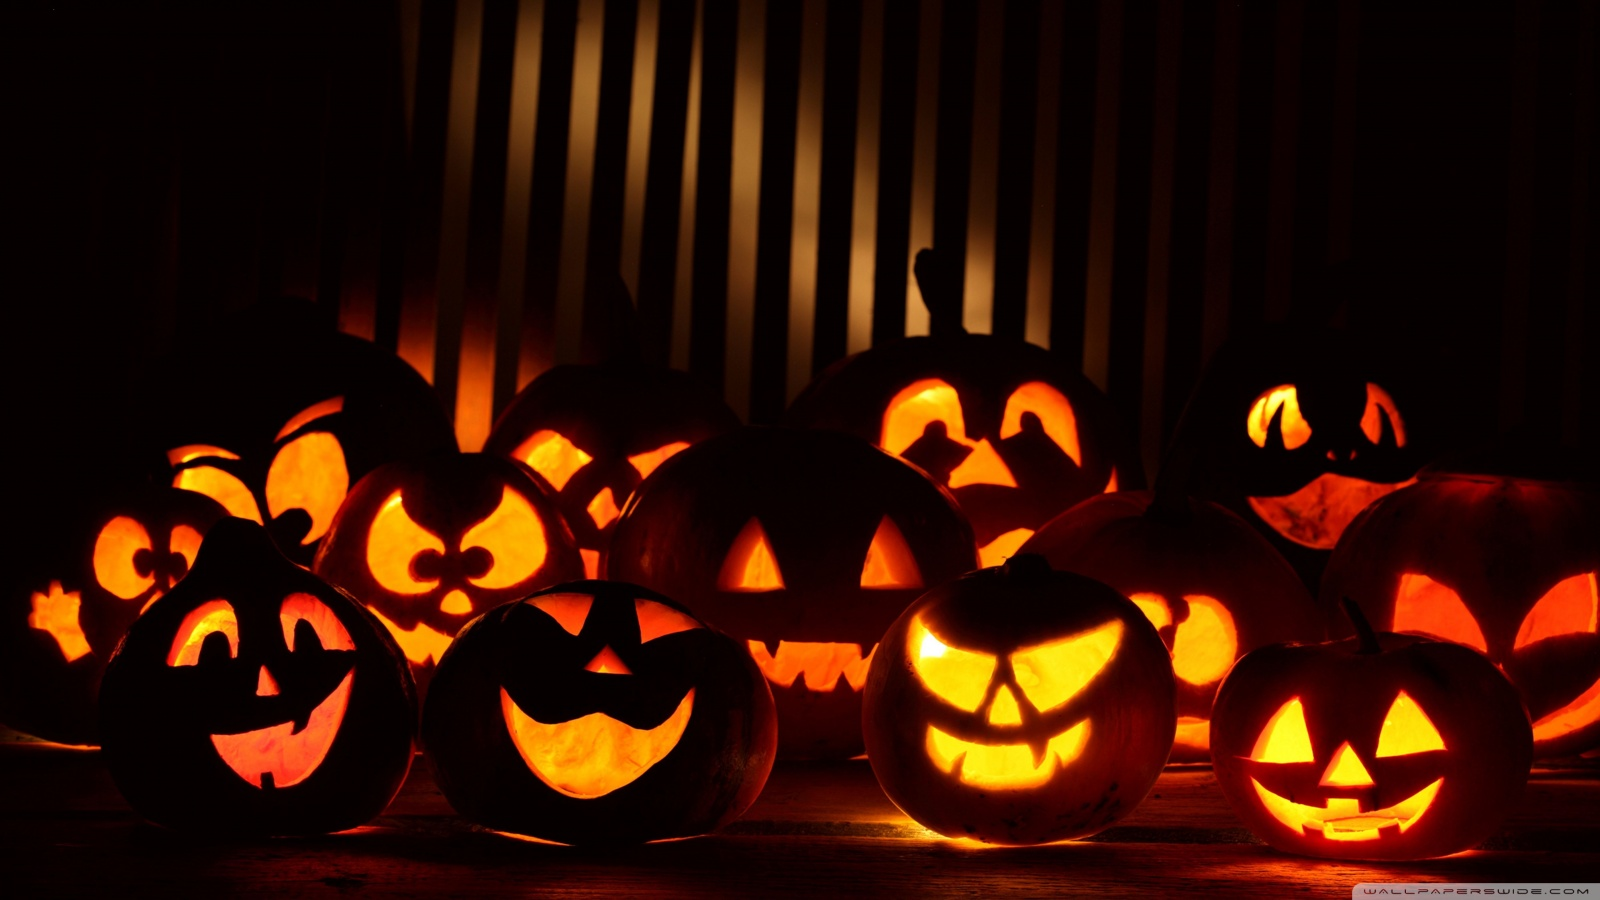 Halloween Wallpaper 1600 X 9001